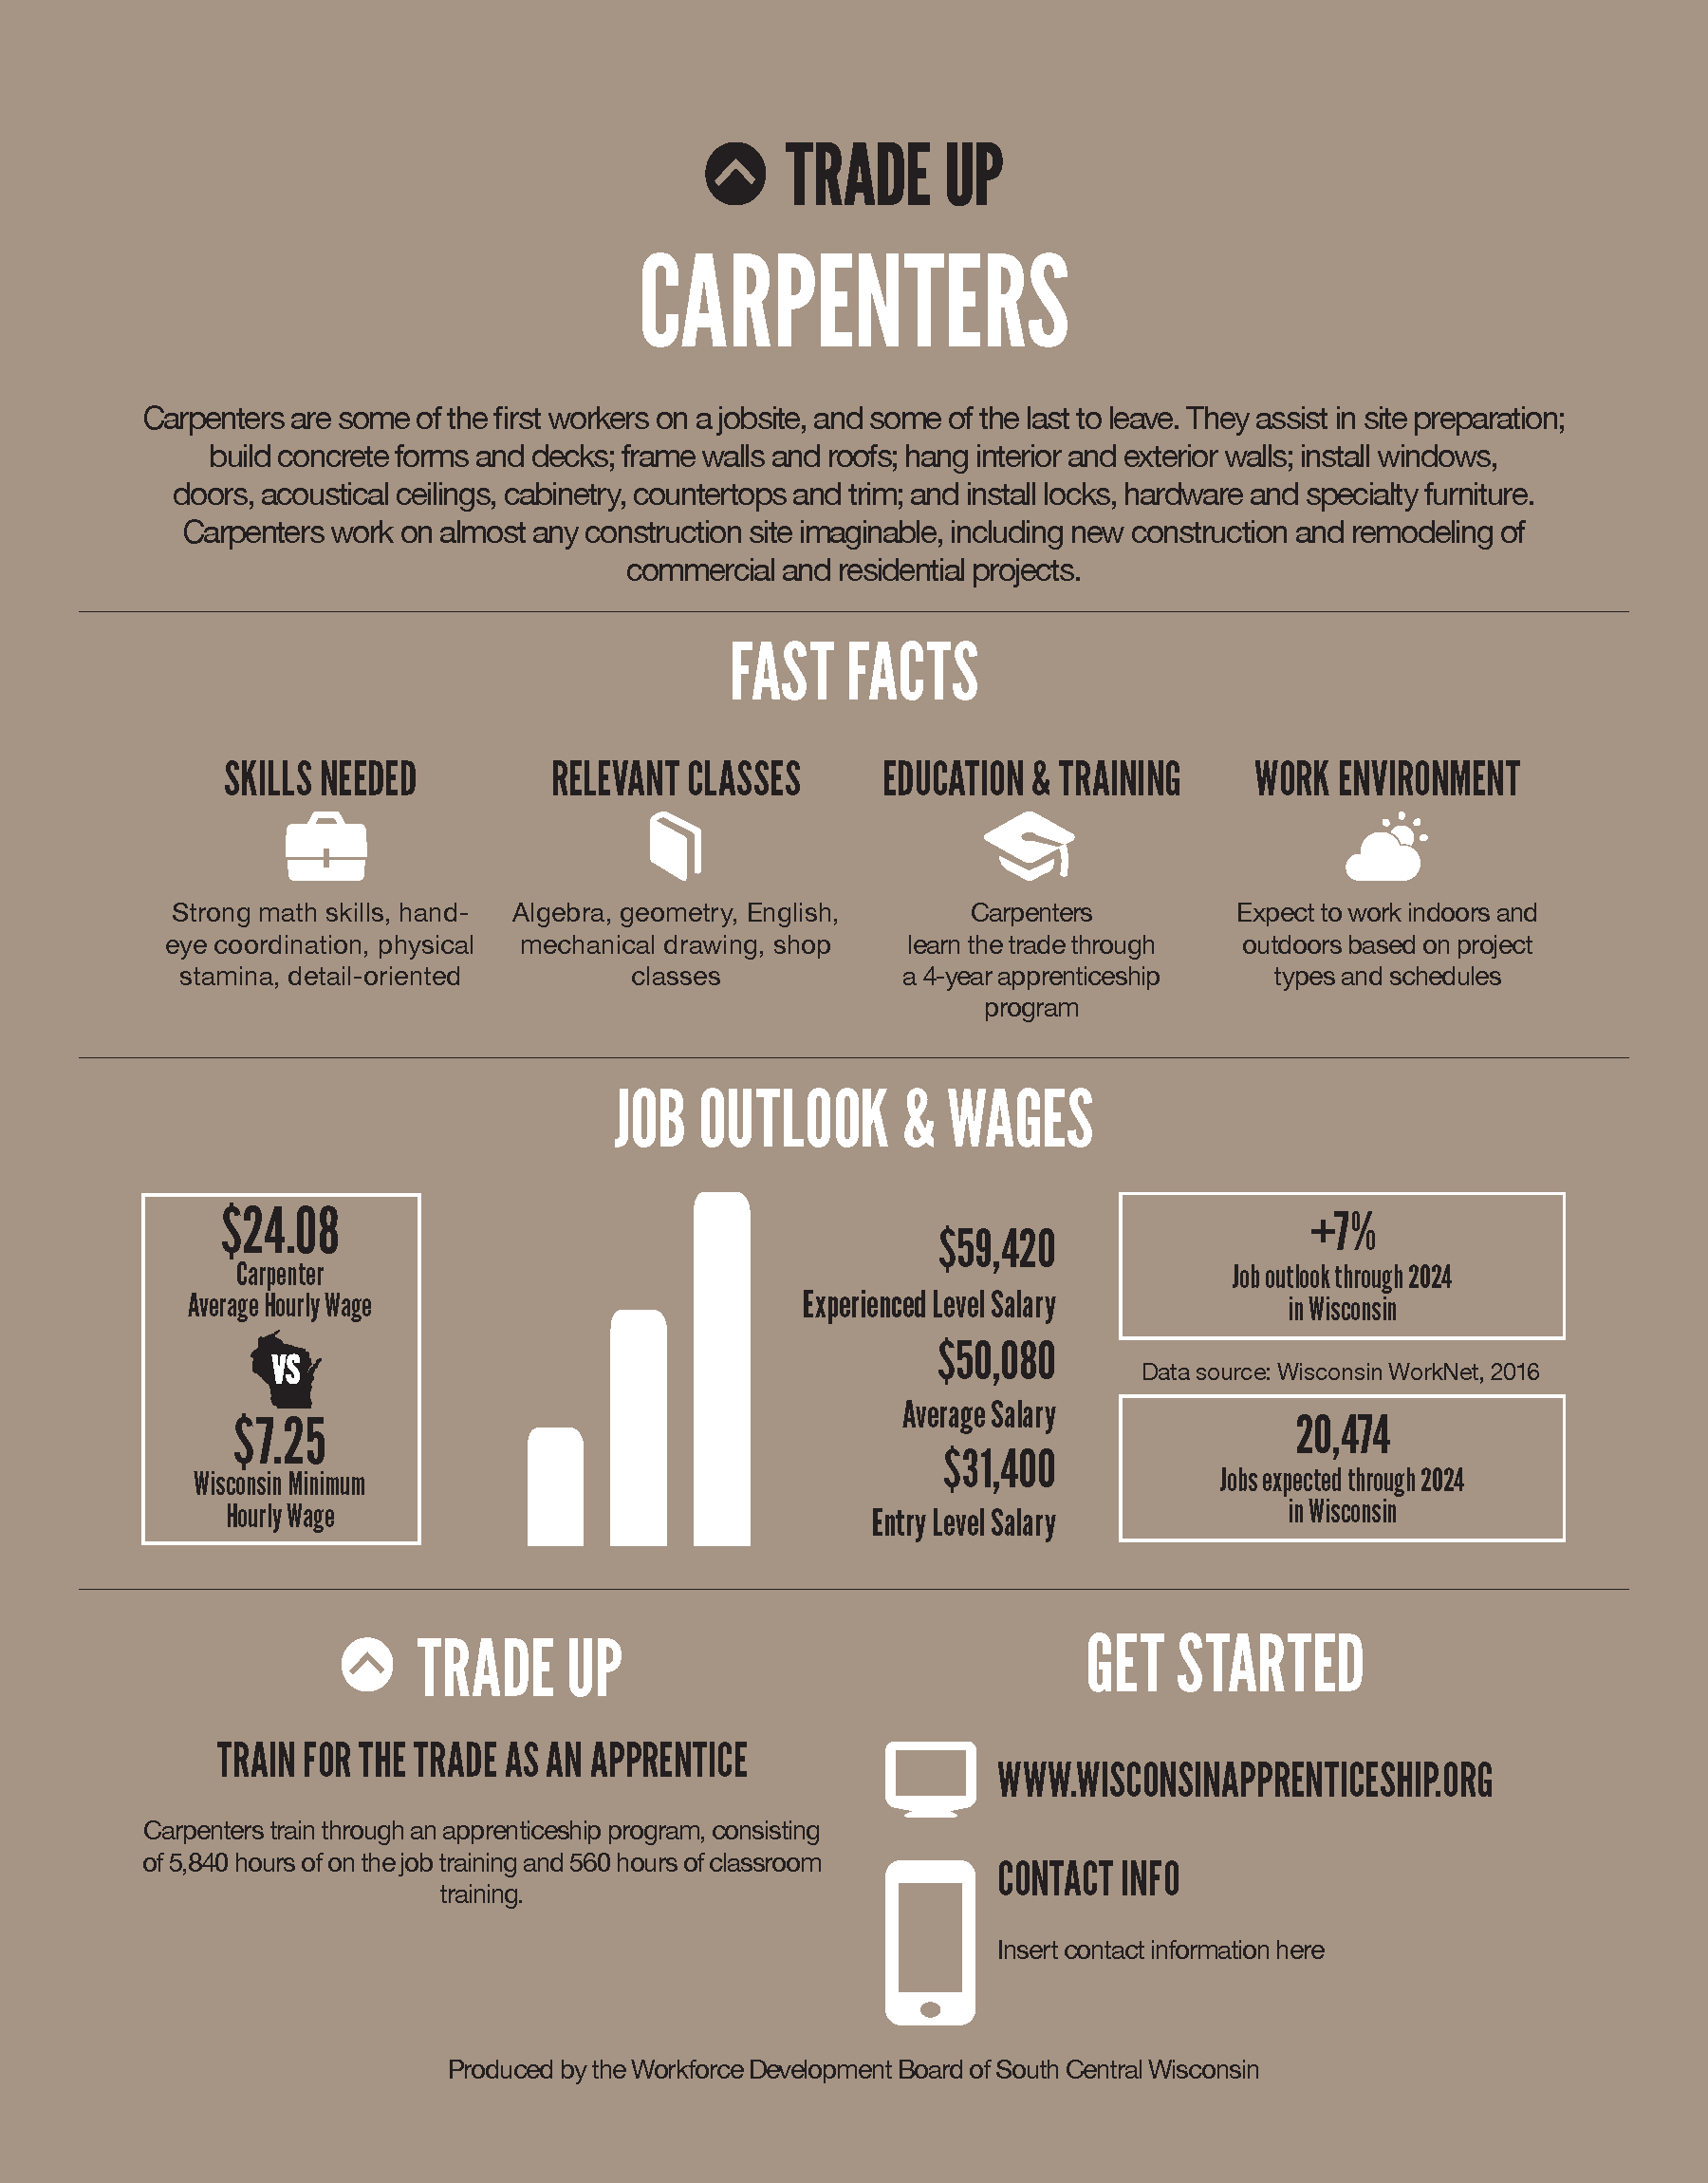 Trade Up poster for Carpenters